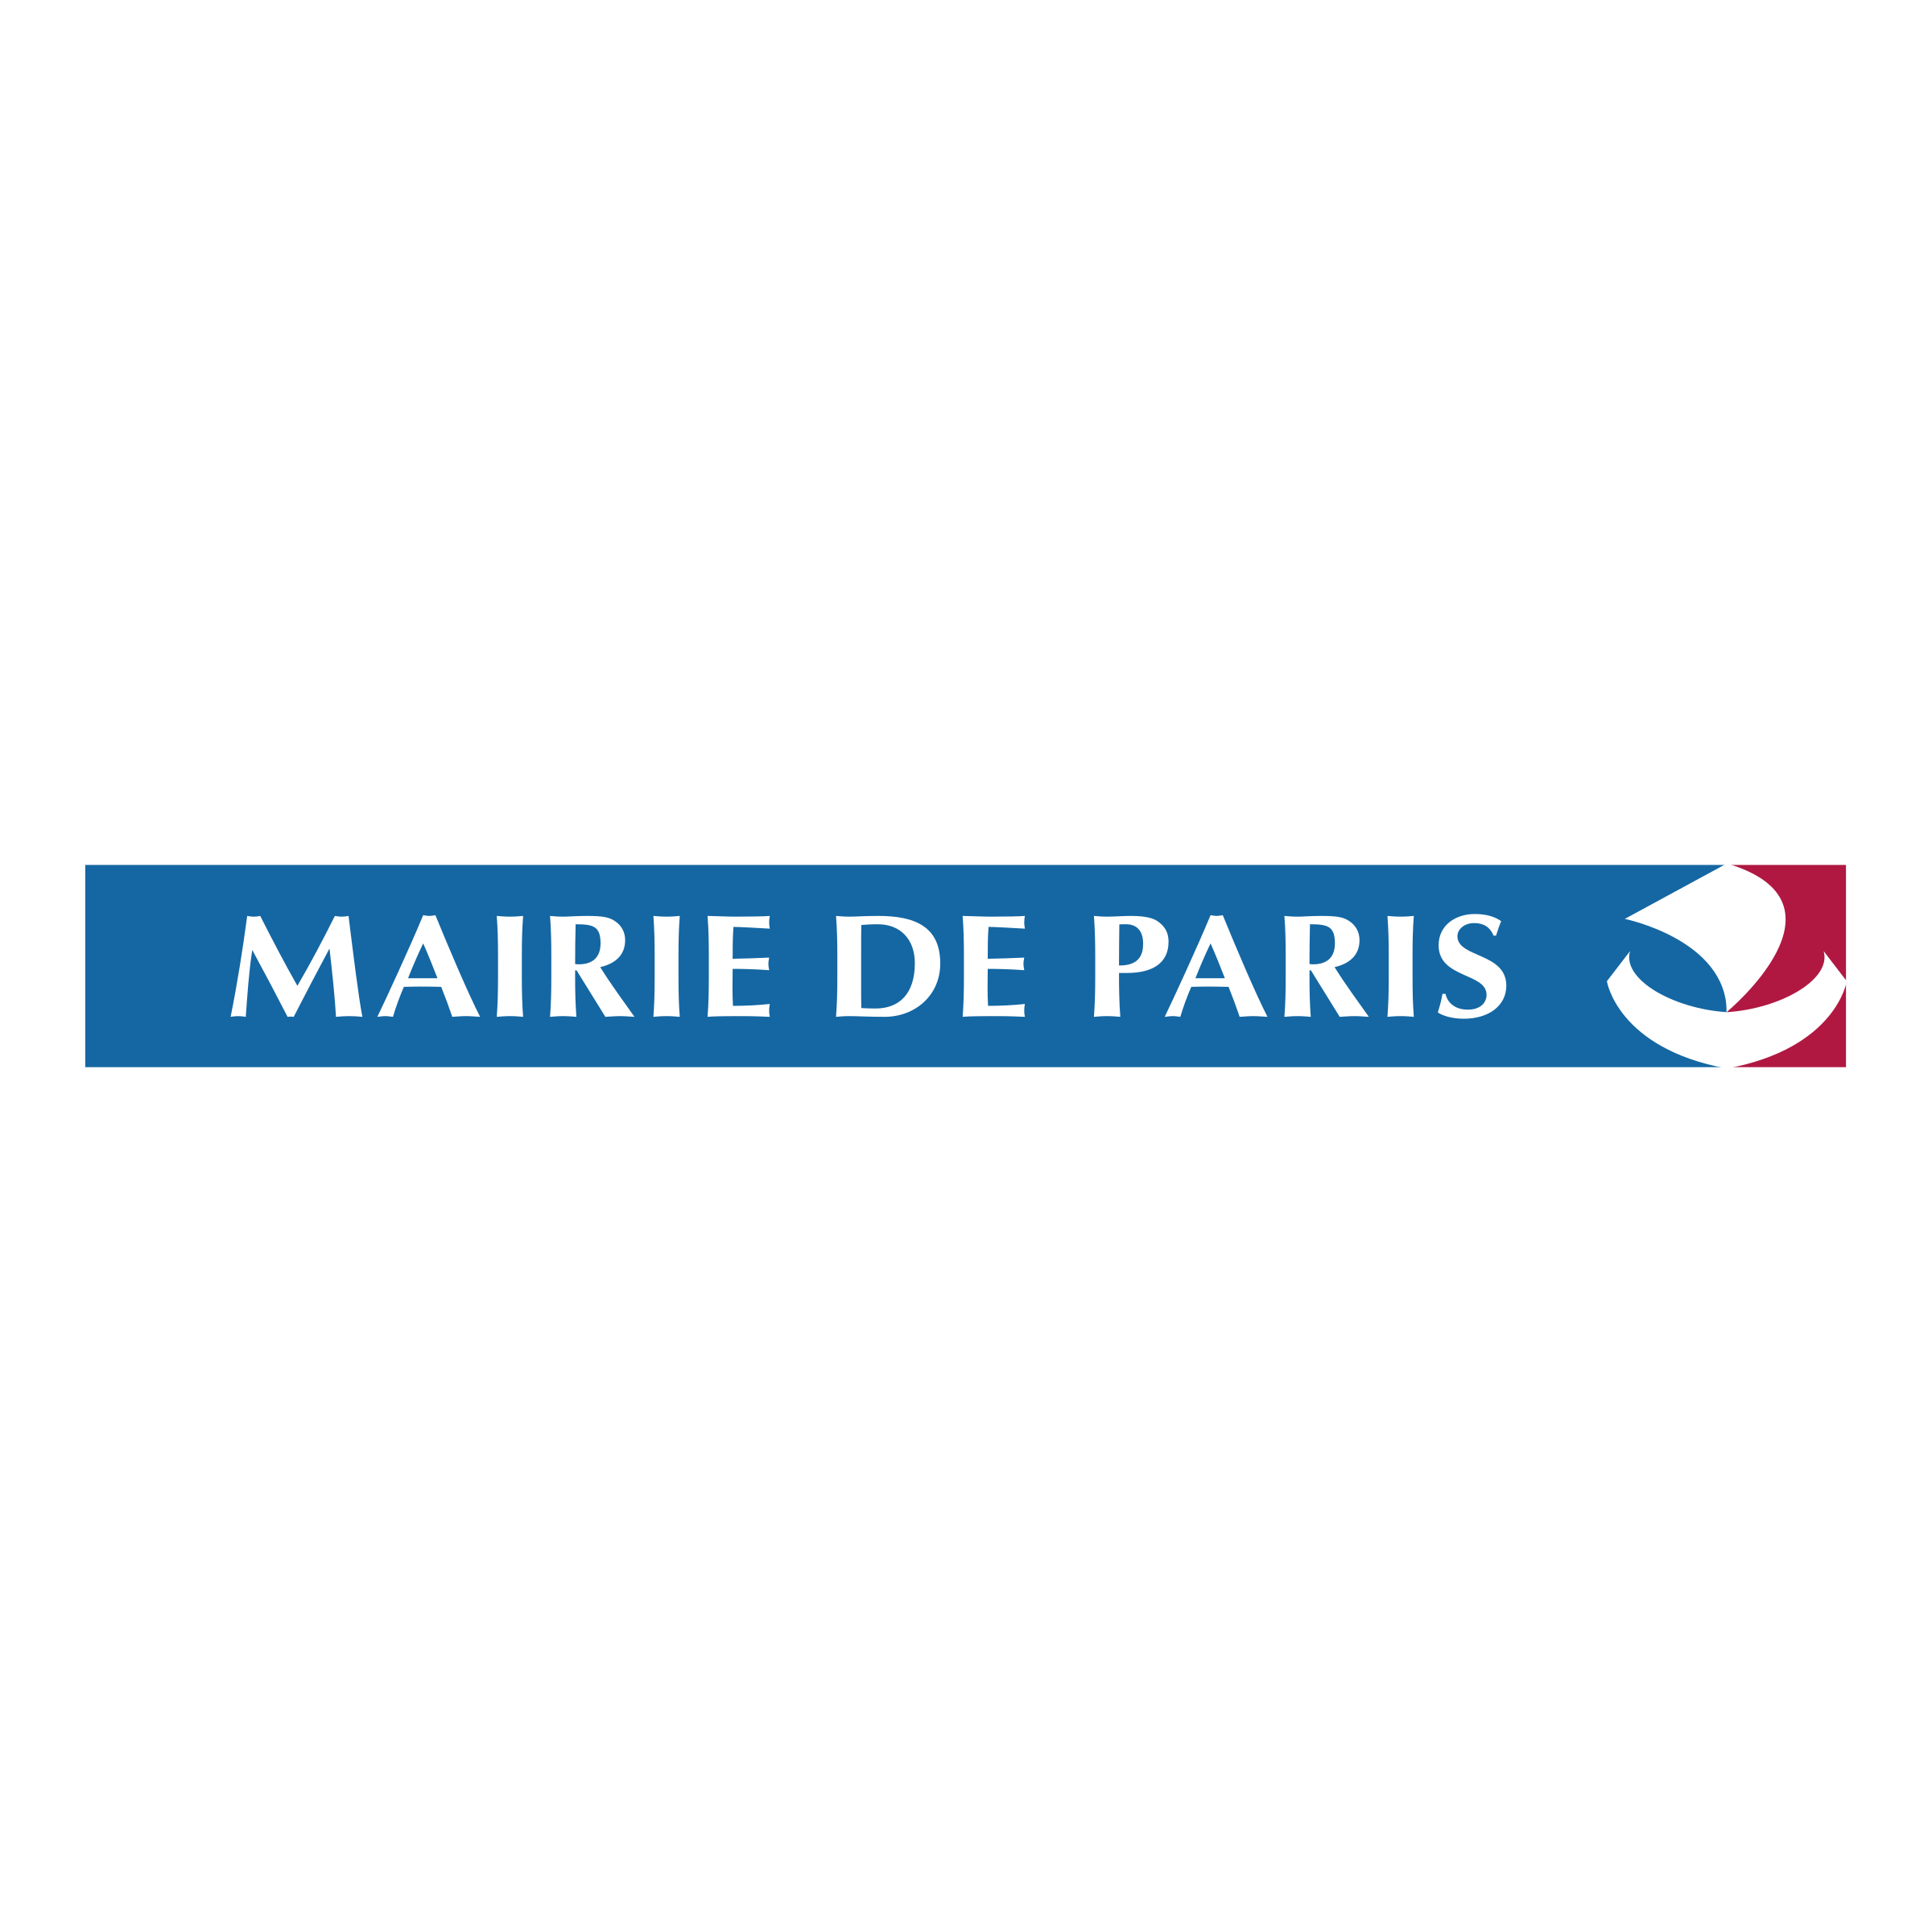 mairie-de-paris-1-logo-png-transparent